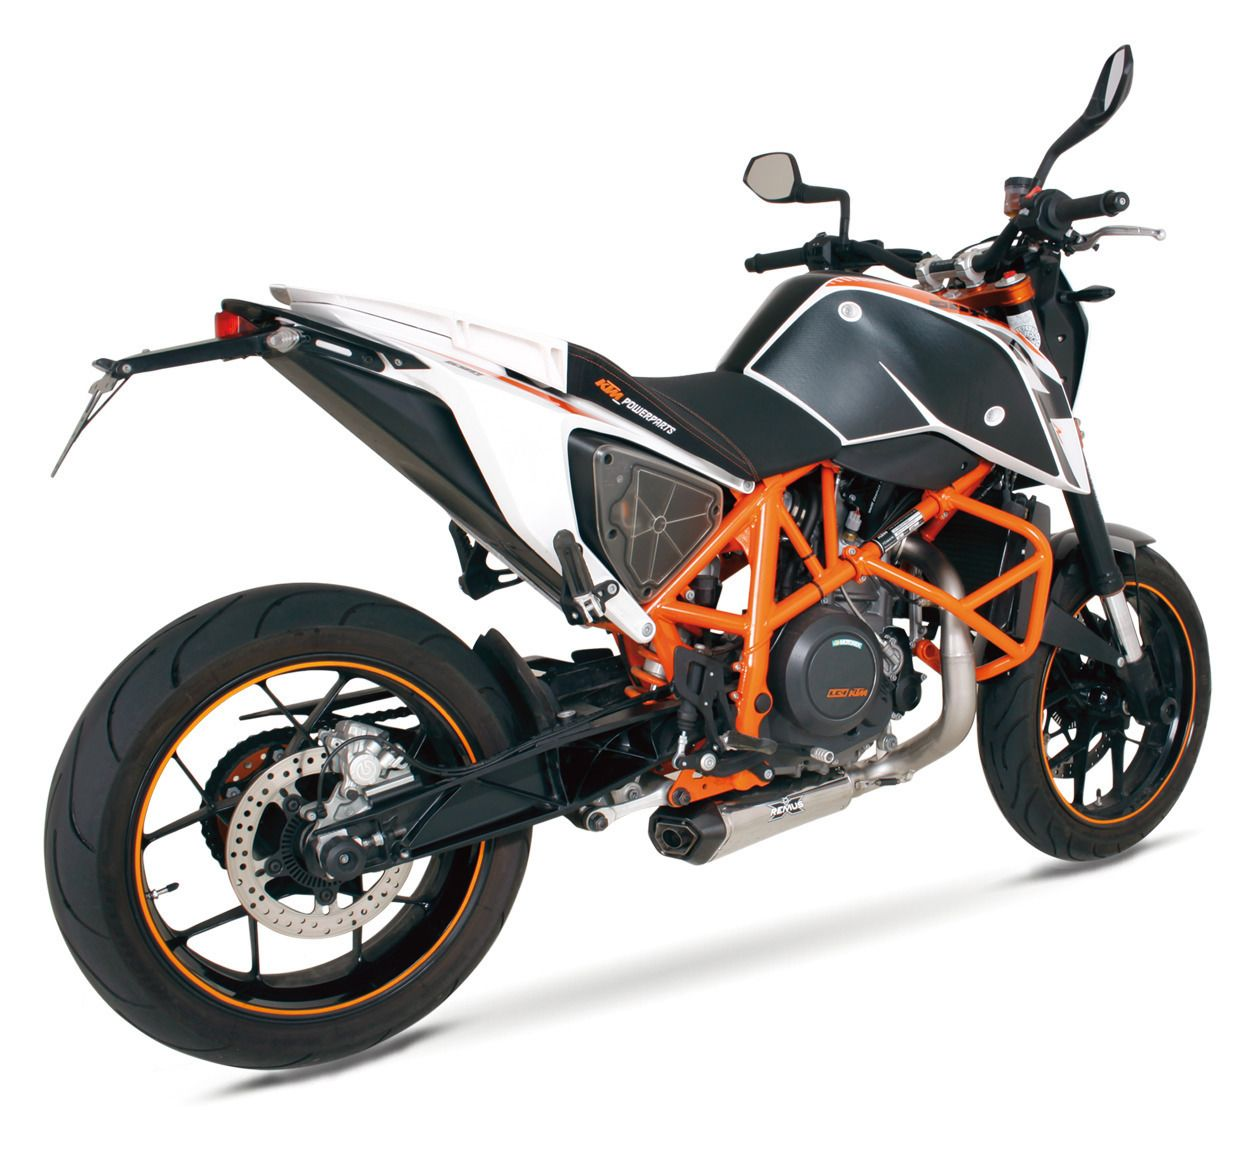 remus hypercone exhaust system exhaust ktm690. Black Bedroom Furniture Sets. Home Design Ideas